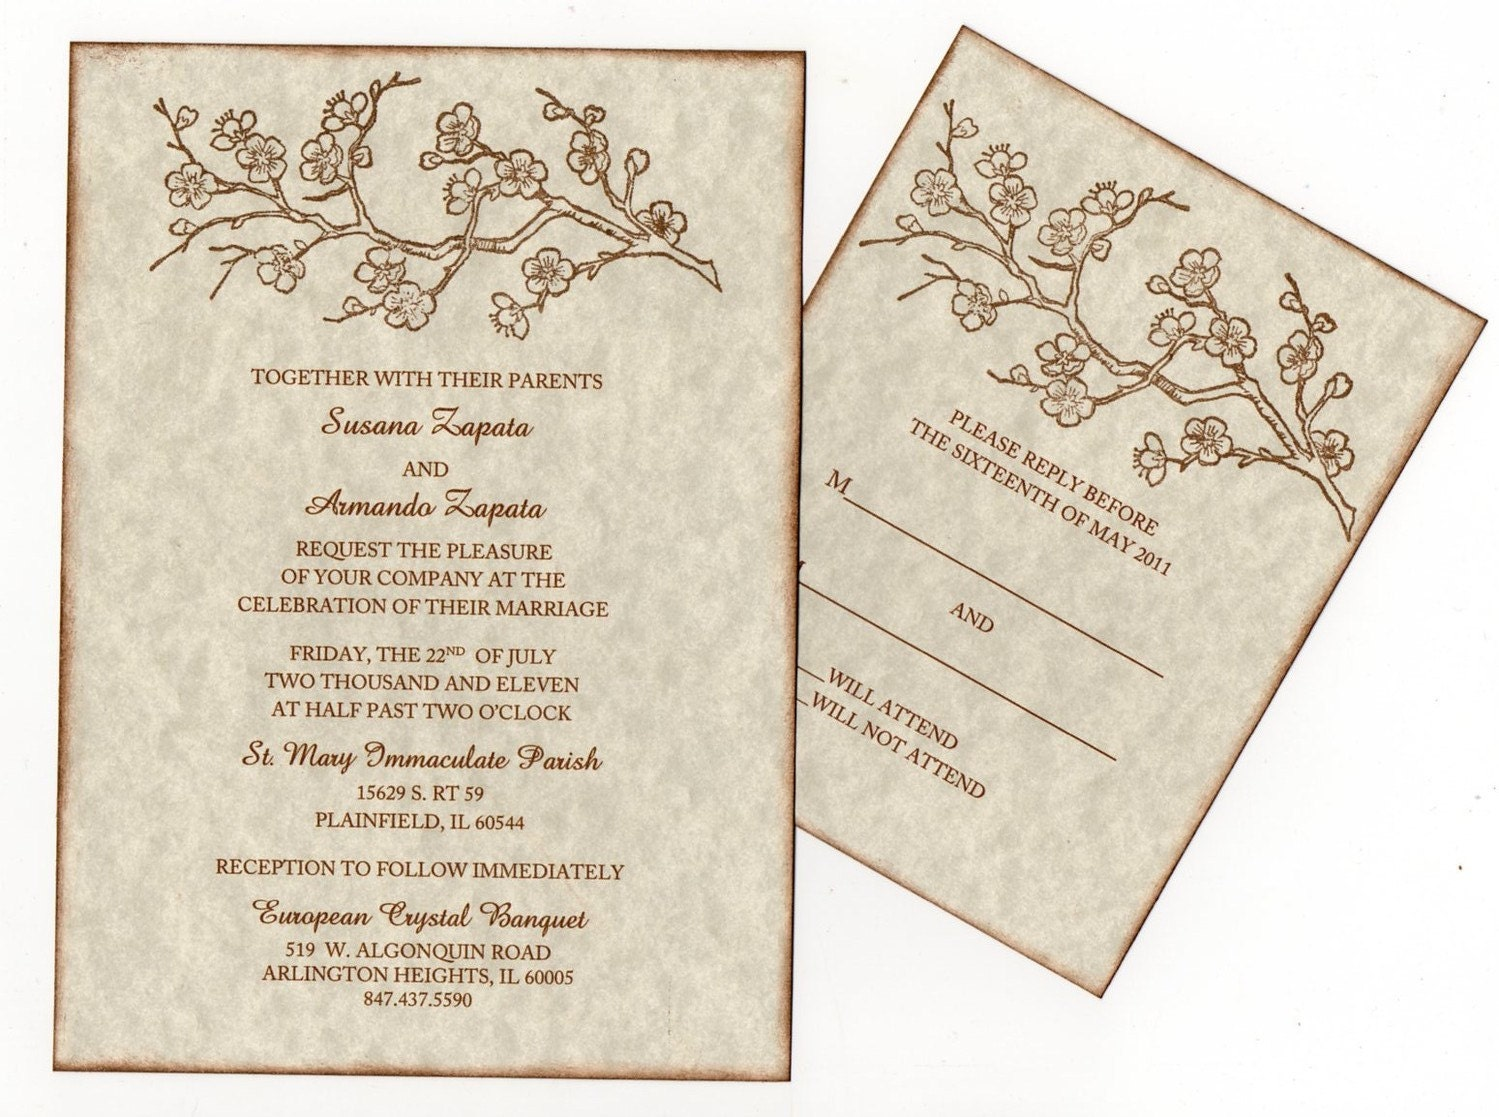 Indian Wedding Invitation Card Designs Manish Sharma